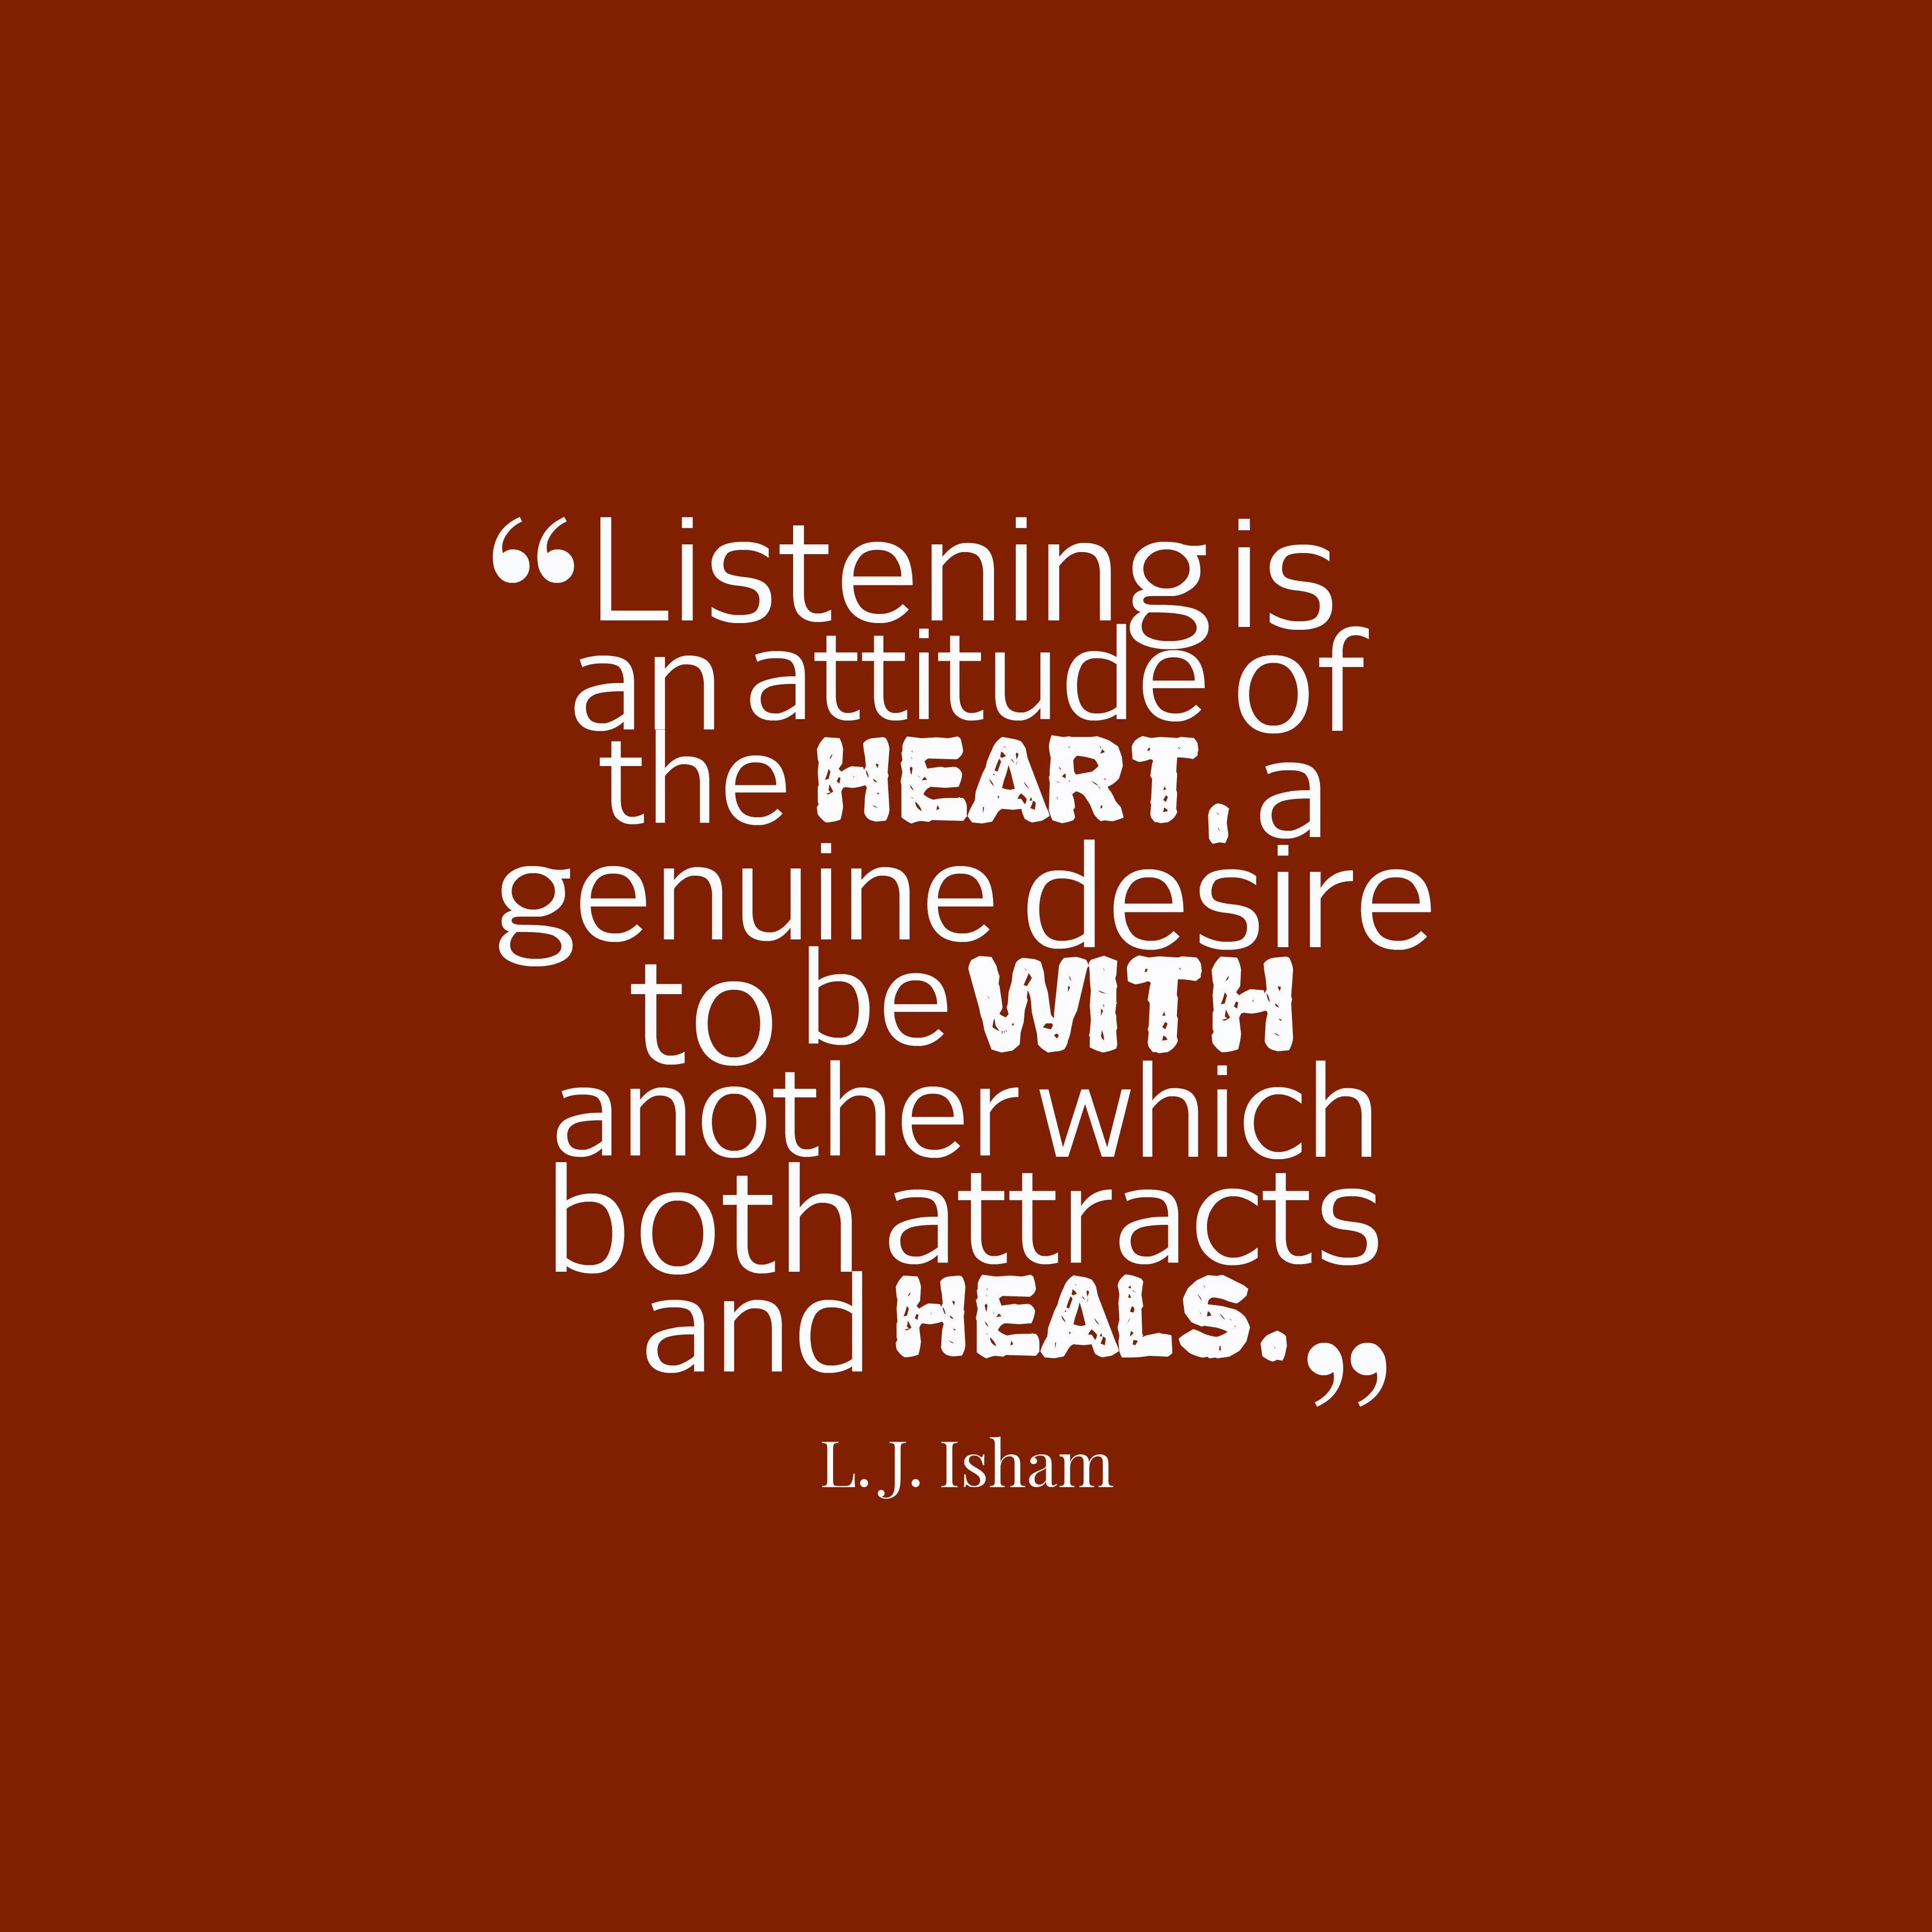 l j isham quote about listening